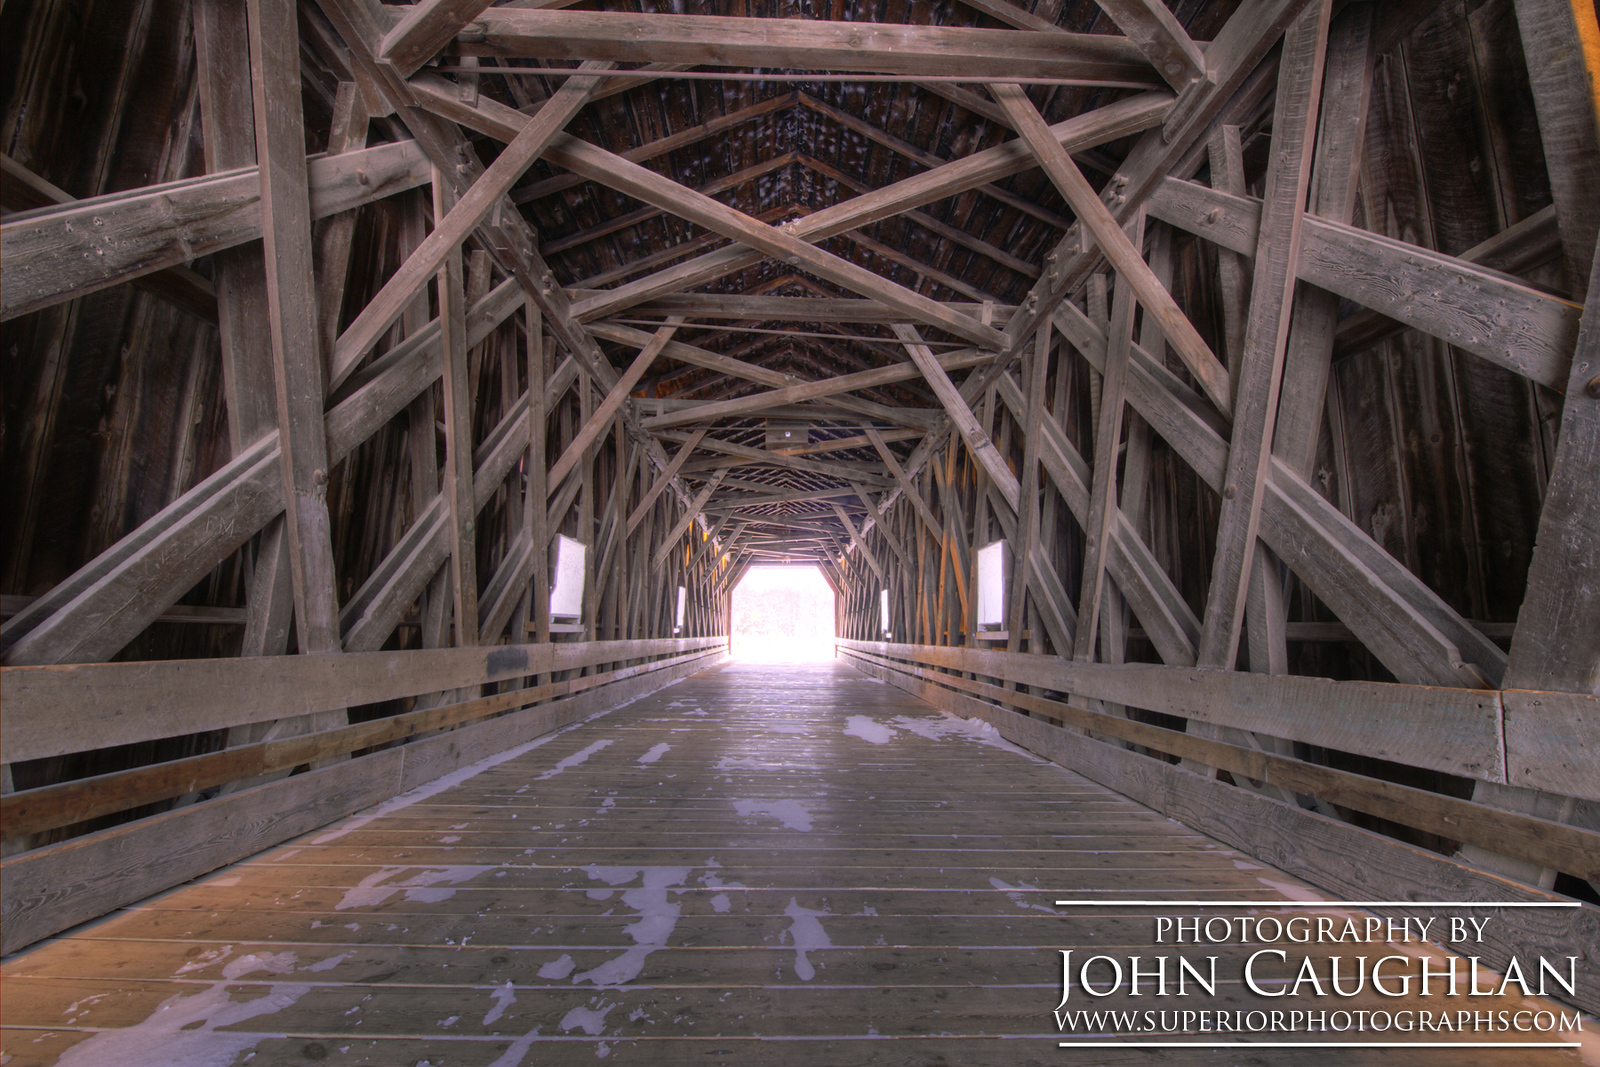 CoveredBridge(zumbrota1b)